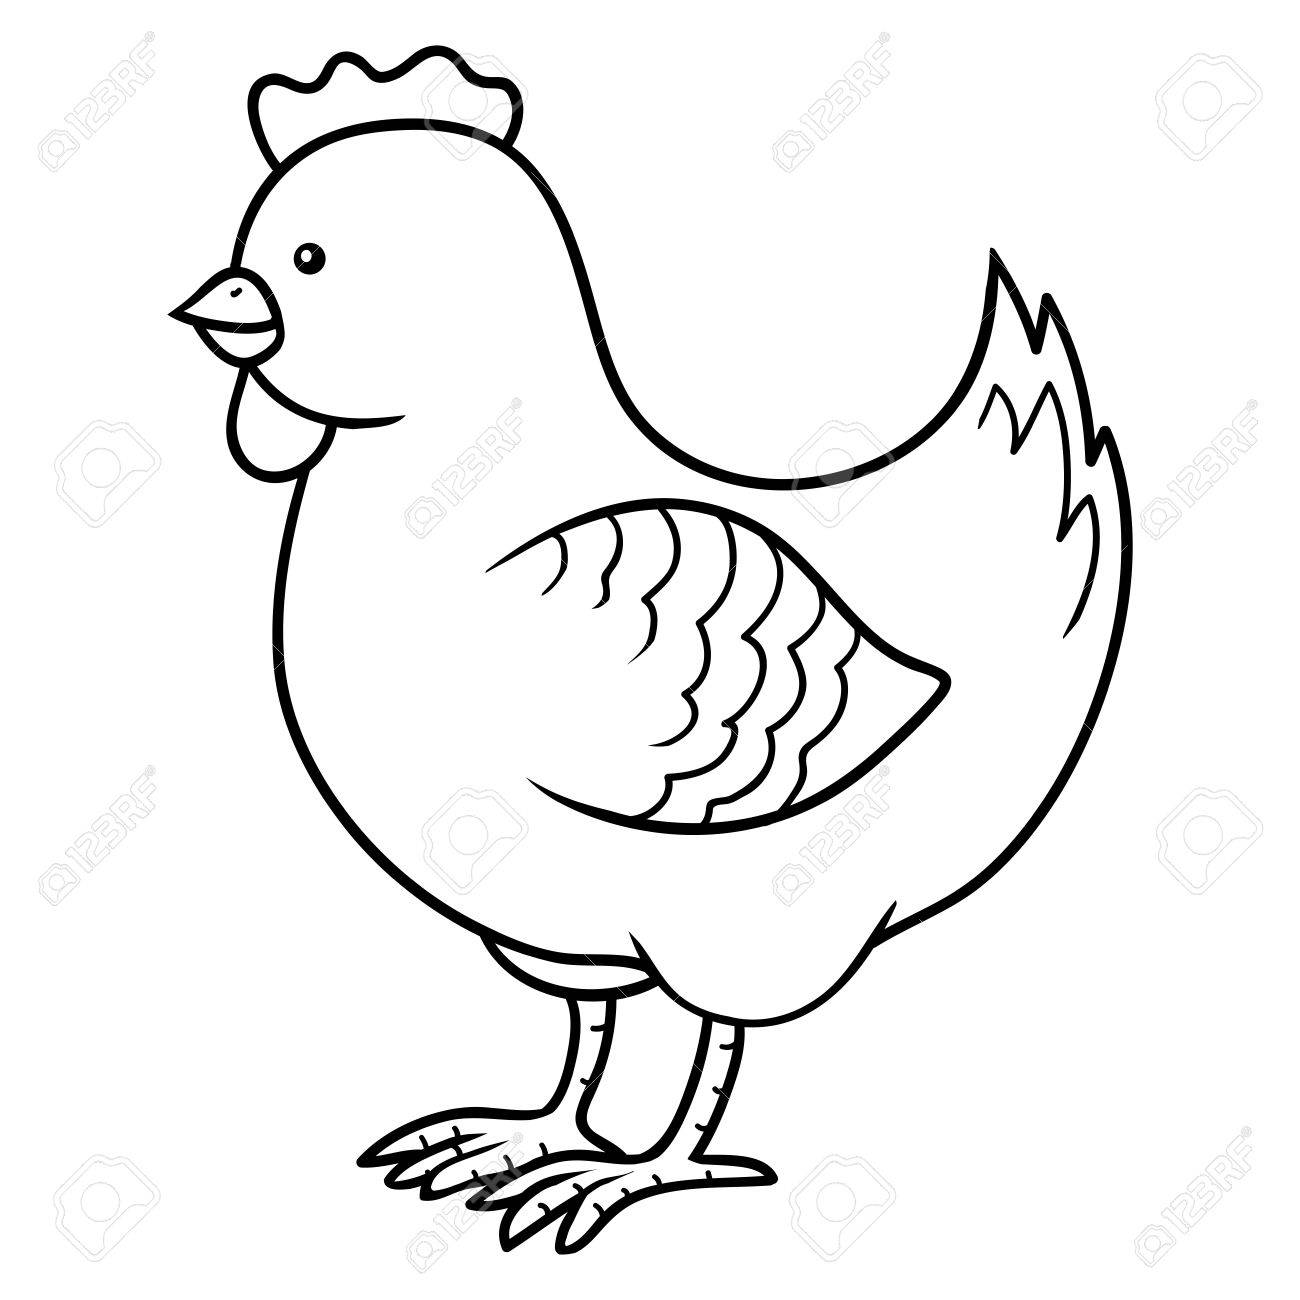 coloring book chicken royalty free cliparts vectors and stock